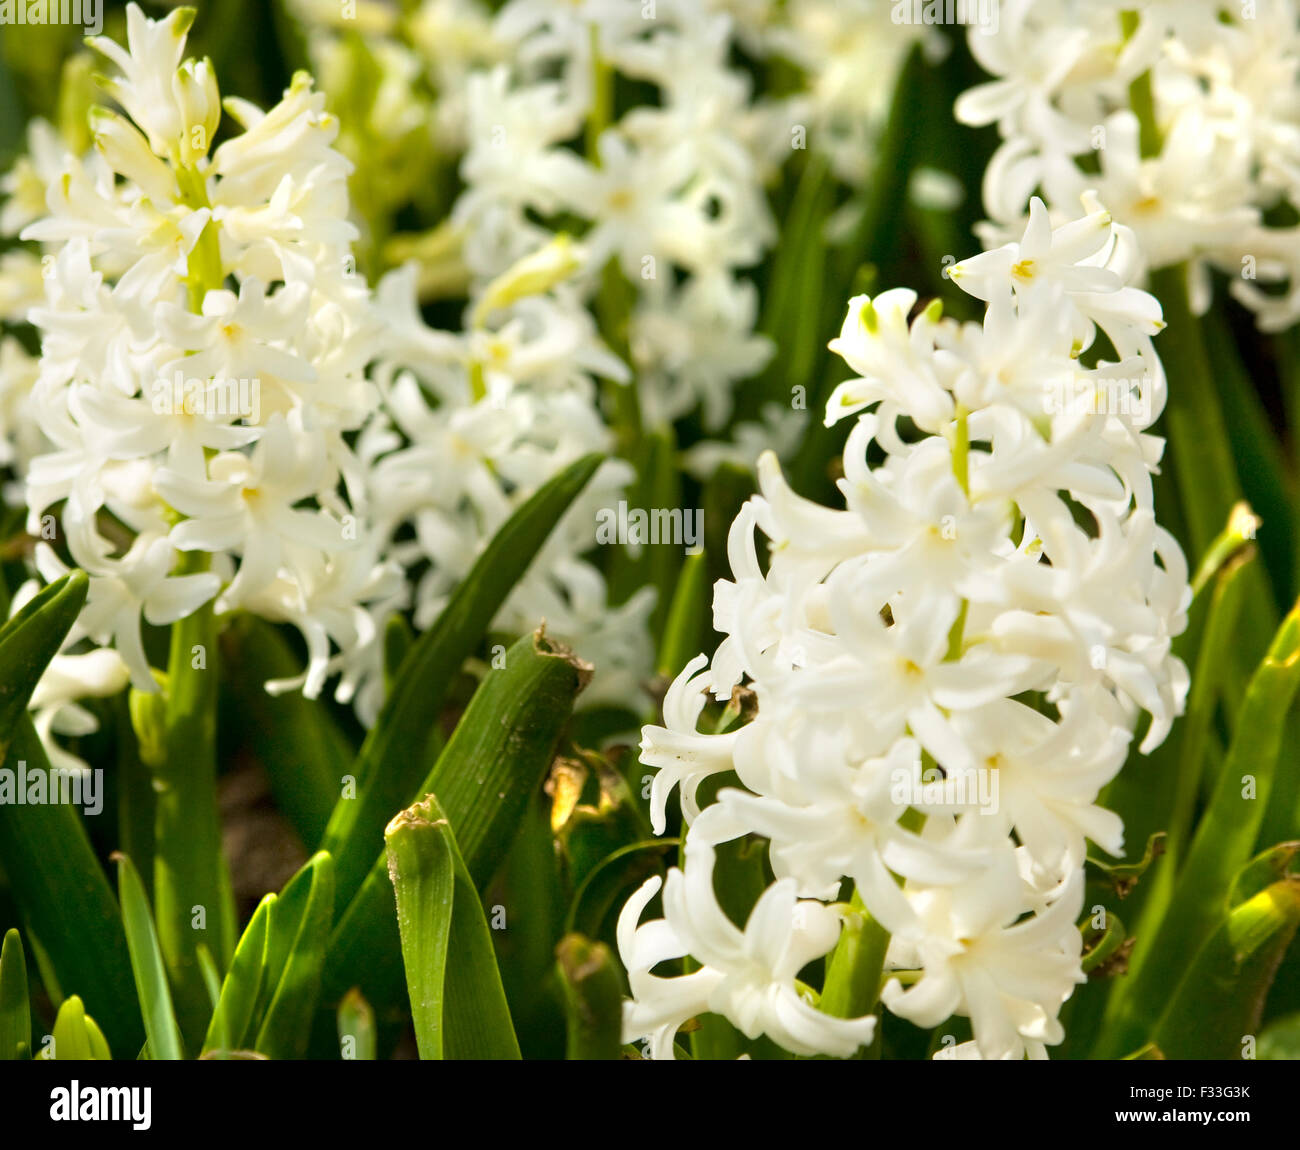 Few Flowers Of Hyacinth Of White Colour On Flower Bed Stock Photo